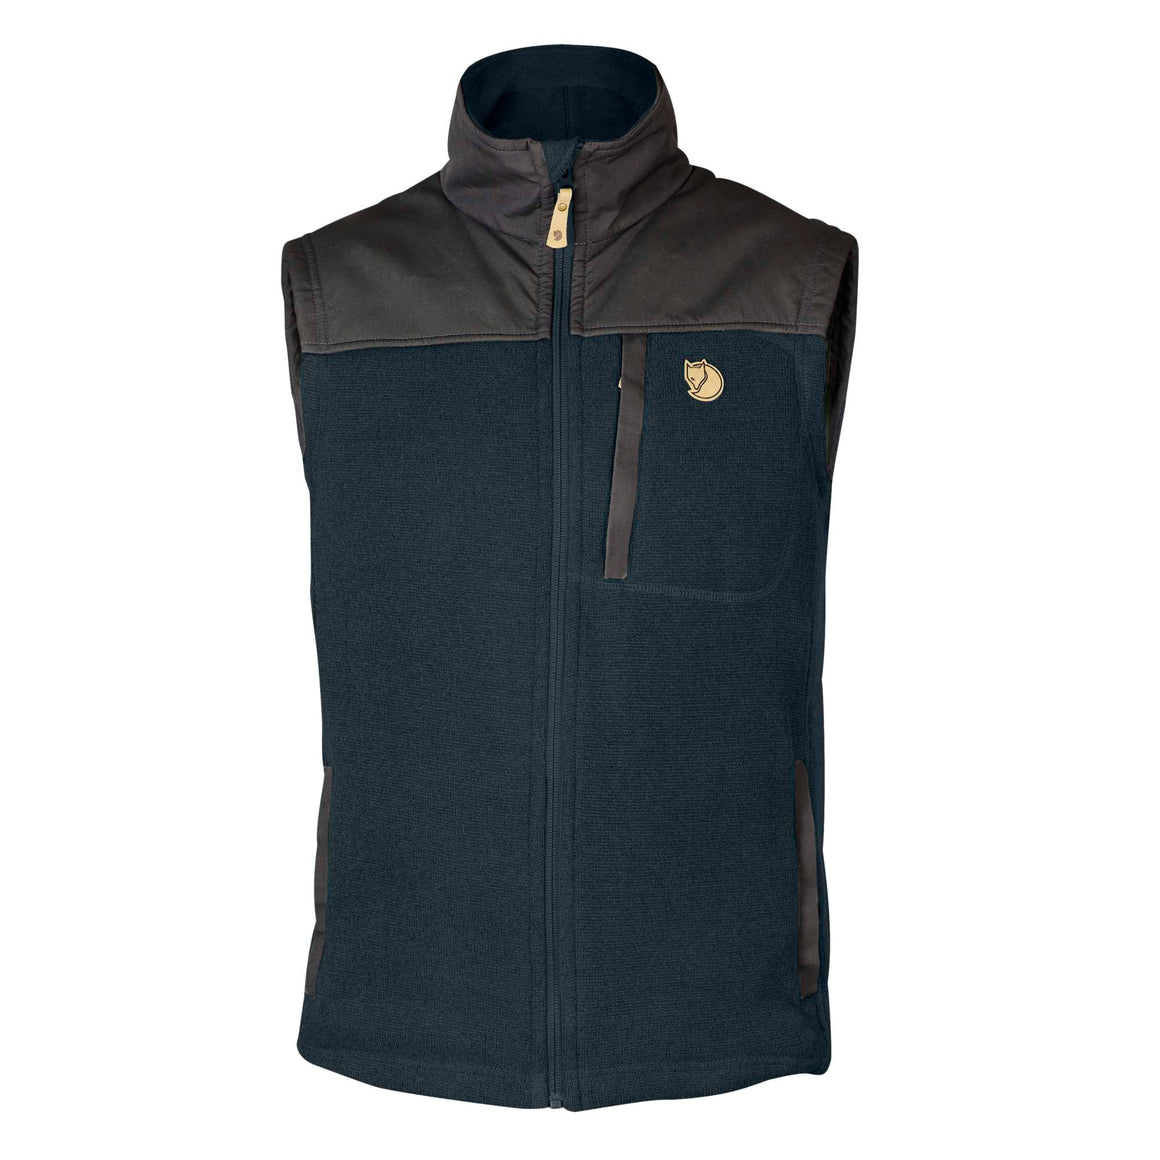 Fjallraven buck fleece vest, www.clunycountrystore.co.uk, Gilet, Fjall Raven